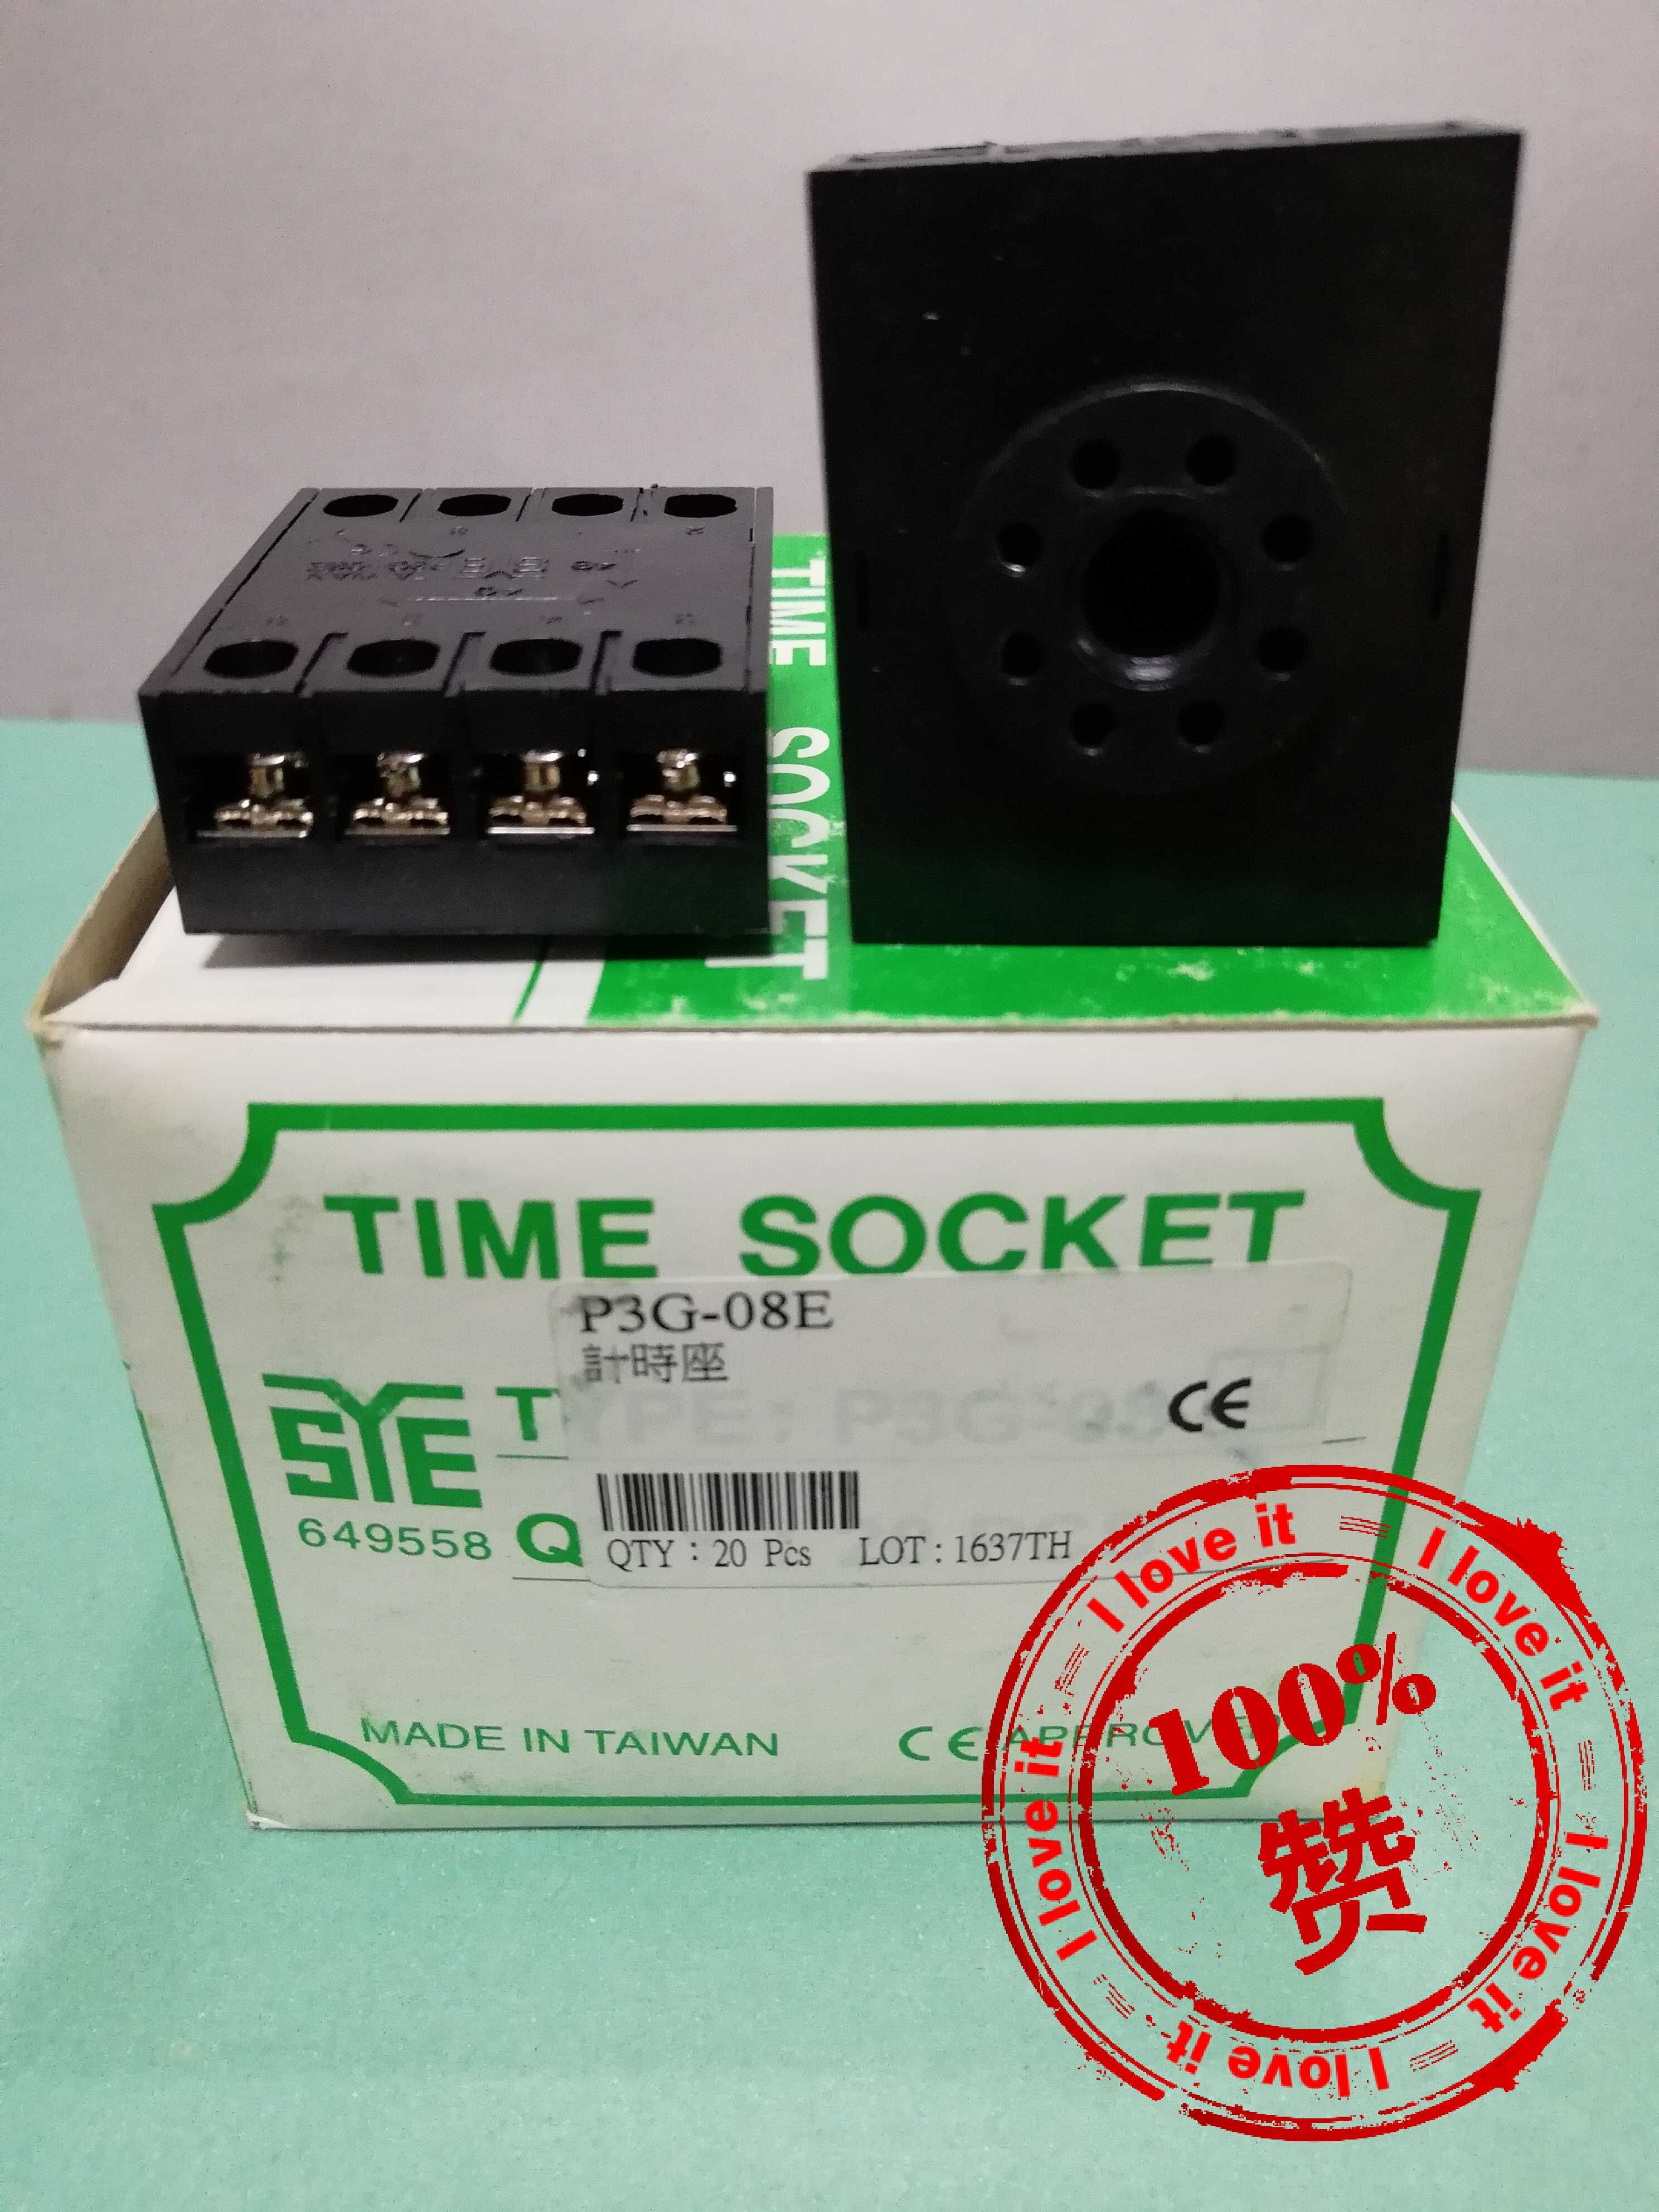 The Original Controller Timer Base Accessories P3G-08E